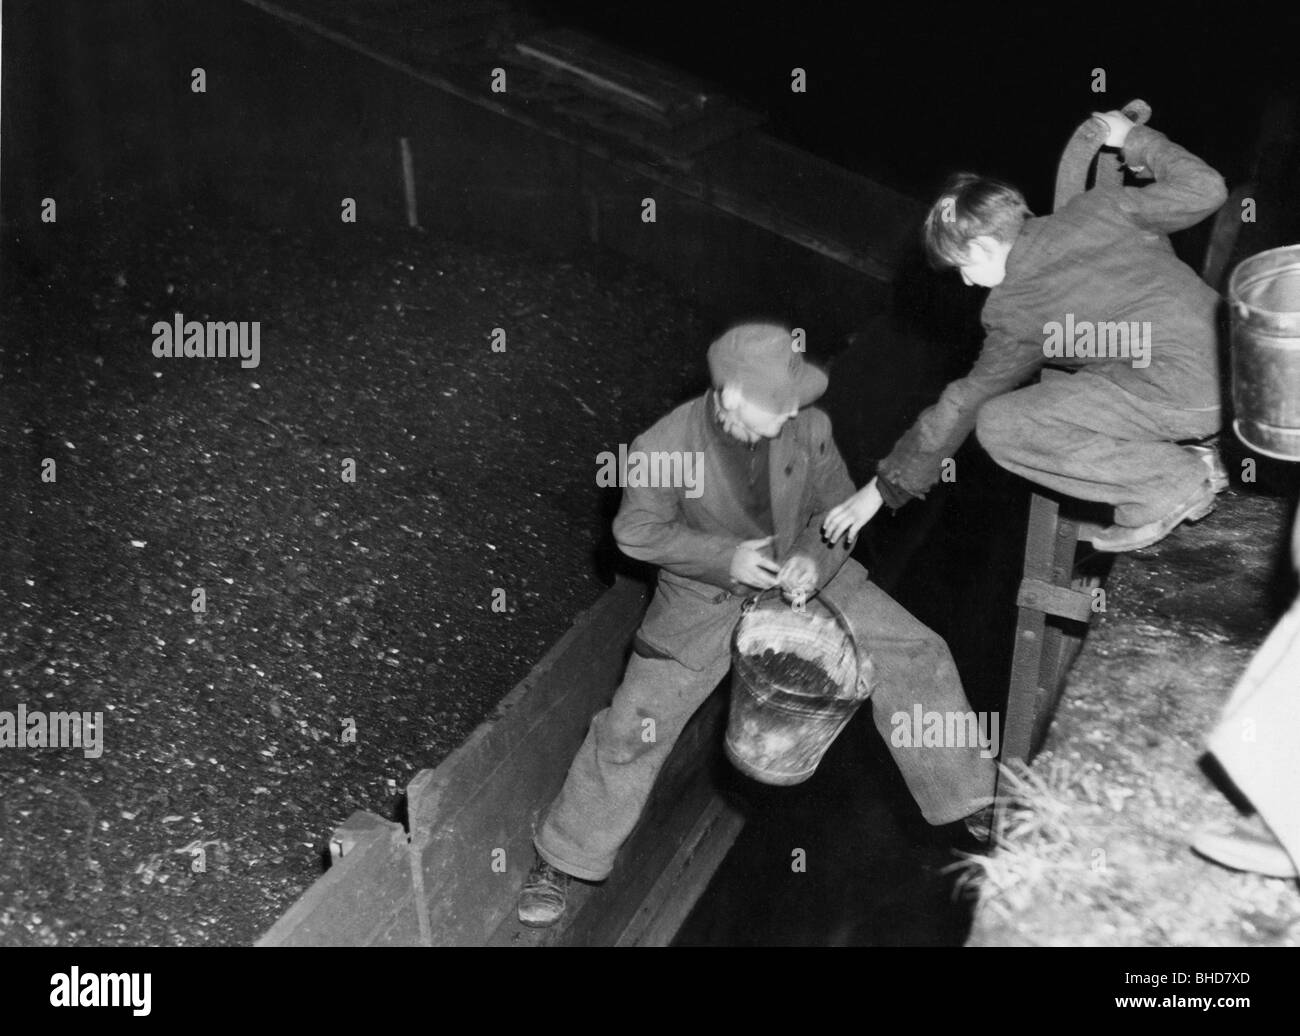 postwar period, hardship, misery and starvation, two young men stealing coal, 1940s, Additional-Rights-Clearances - Stock Image